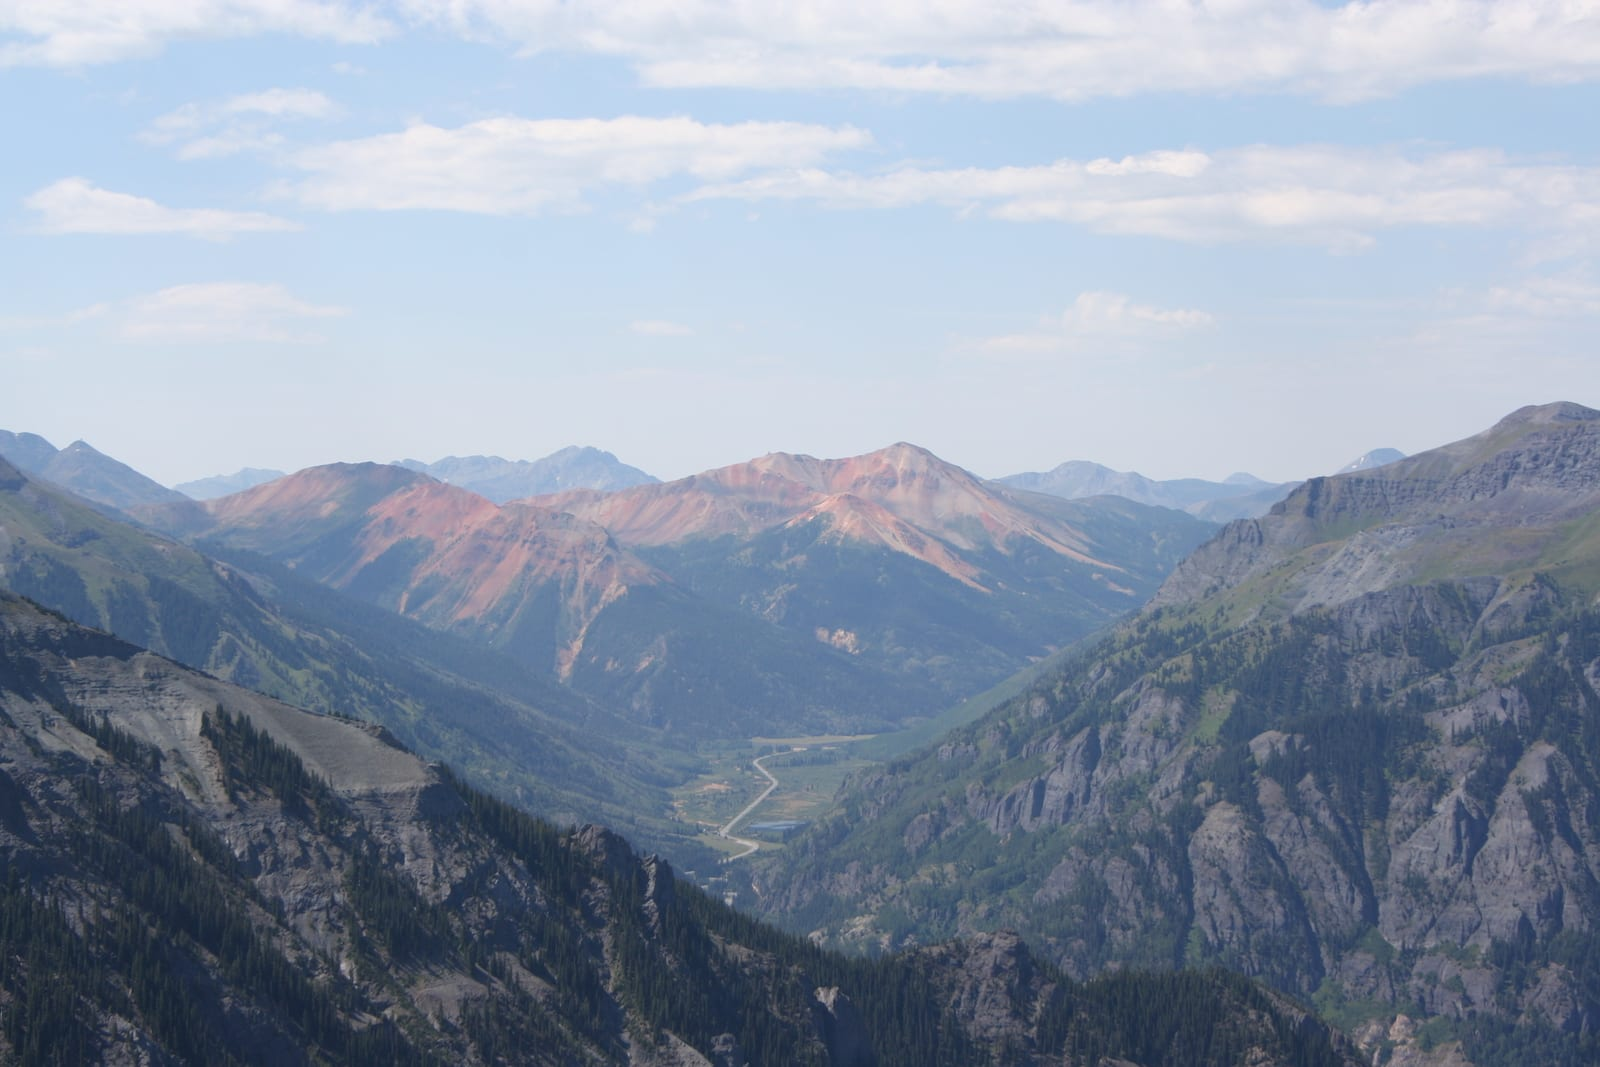 Red Mountain, Ironton Park and Million Dollar Highway Aerial View Colorado